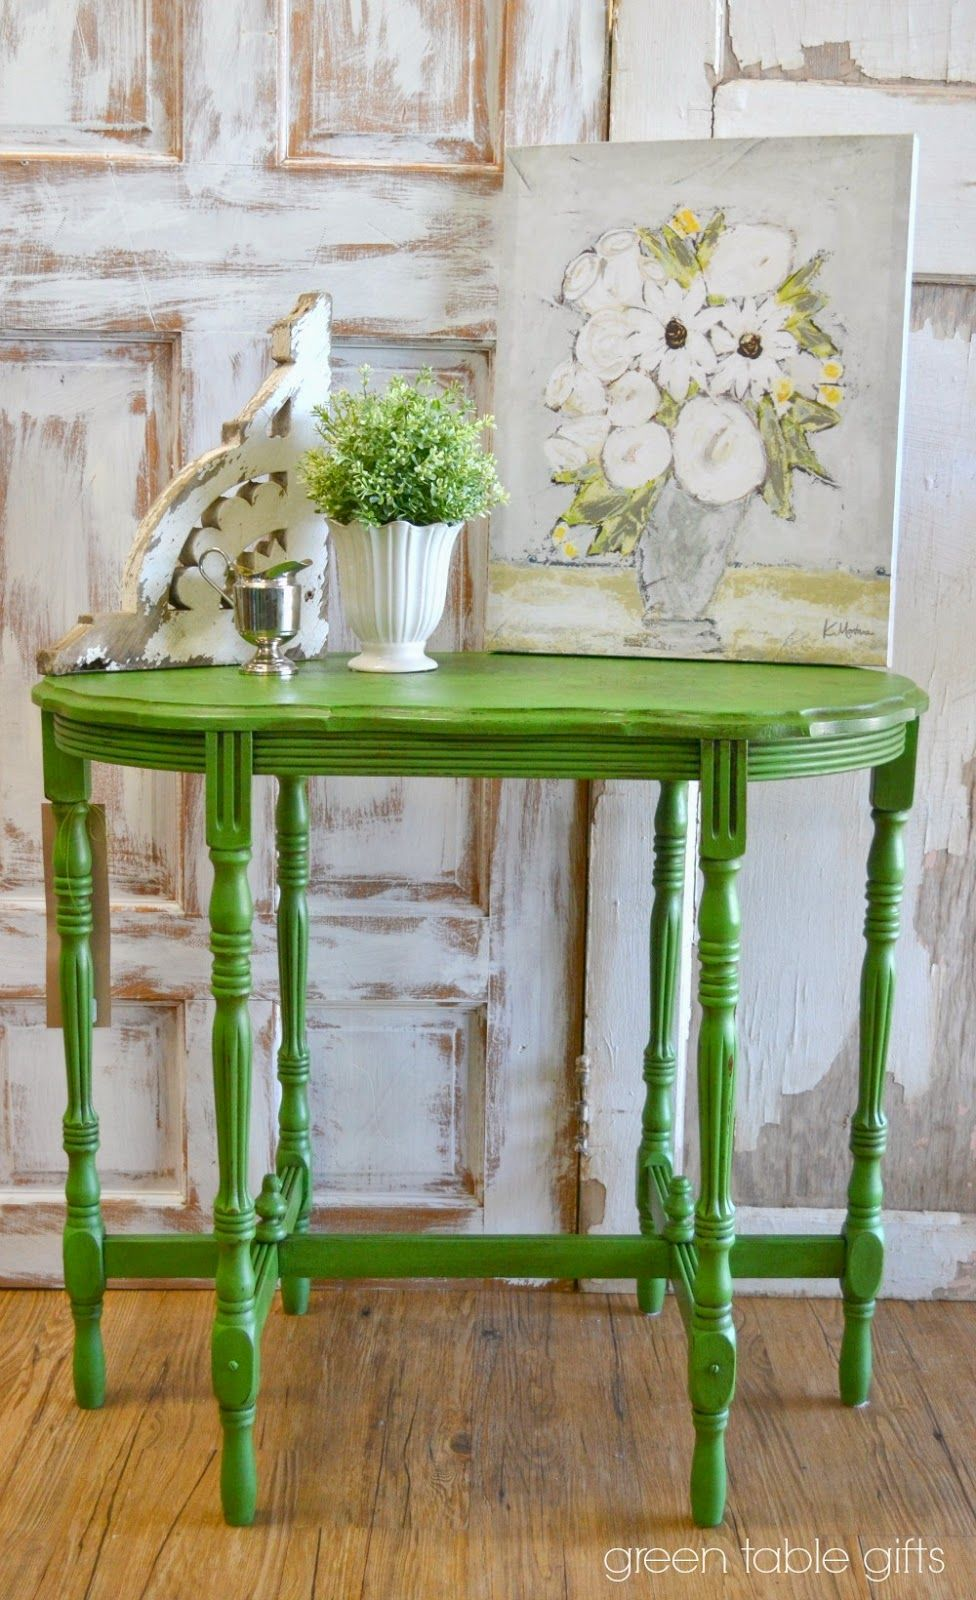 Green Table Gifts: fresh paint // june Antibes Green #chalkpaint decorative paint by Annie Sloan